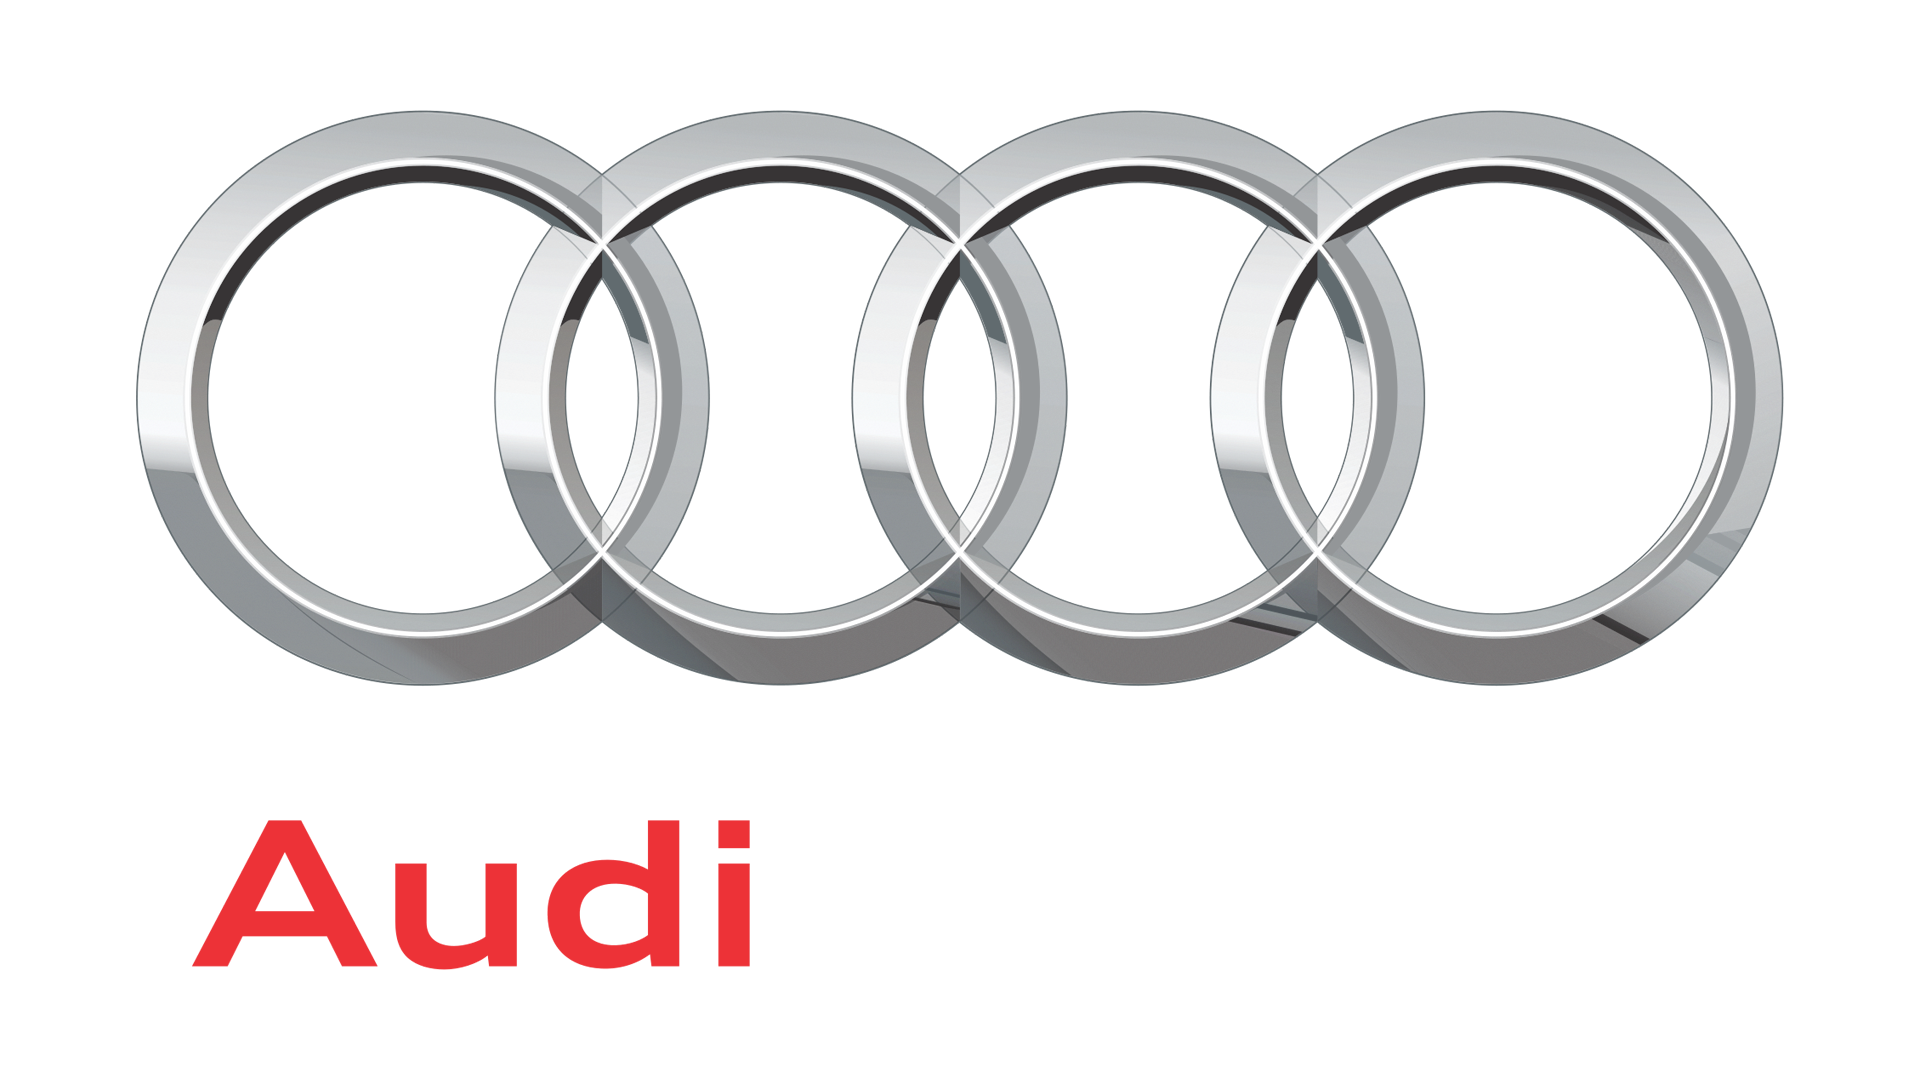 Audi logo hd png meaning information carlogos audi logo 2009present 1920x1080 hd png biocorpaavc Gallery